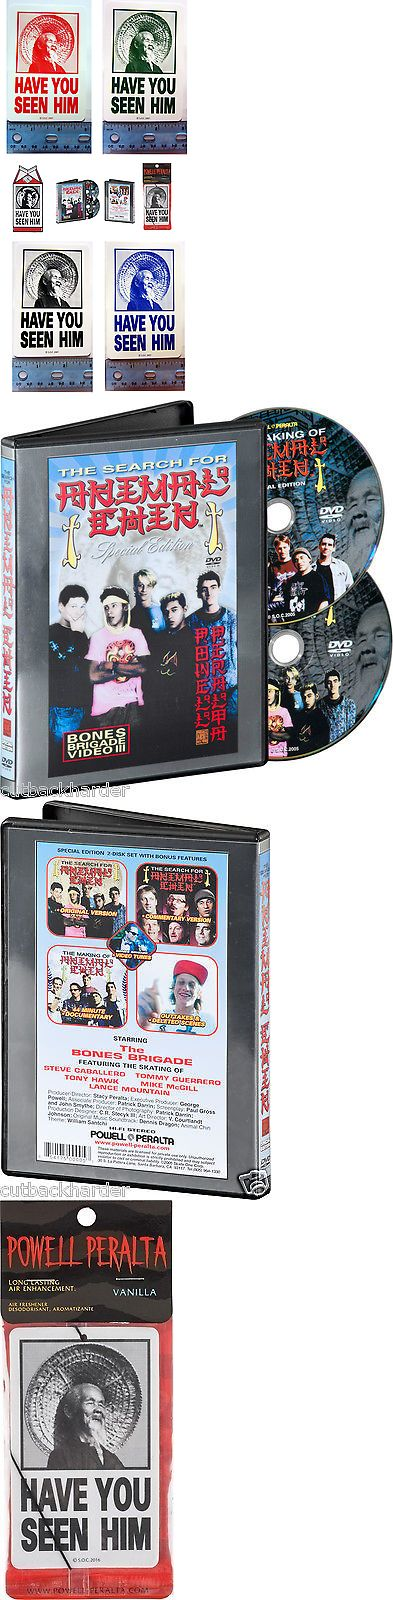 Books and Video 58128: Powell Peralta Animal Chin Skateboard Dvd Sticker Pin Air Freshner 7 Pc Set New -> BUY IT NOW ONLY: $54.95 on eBay!